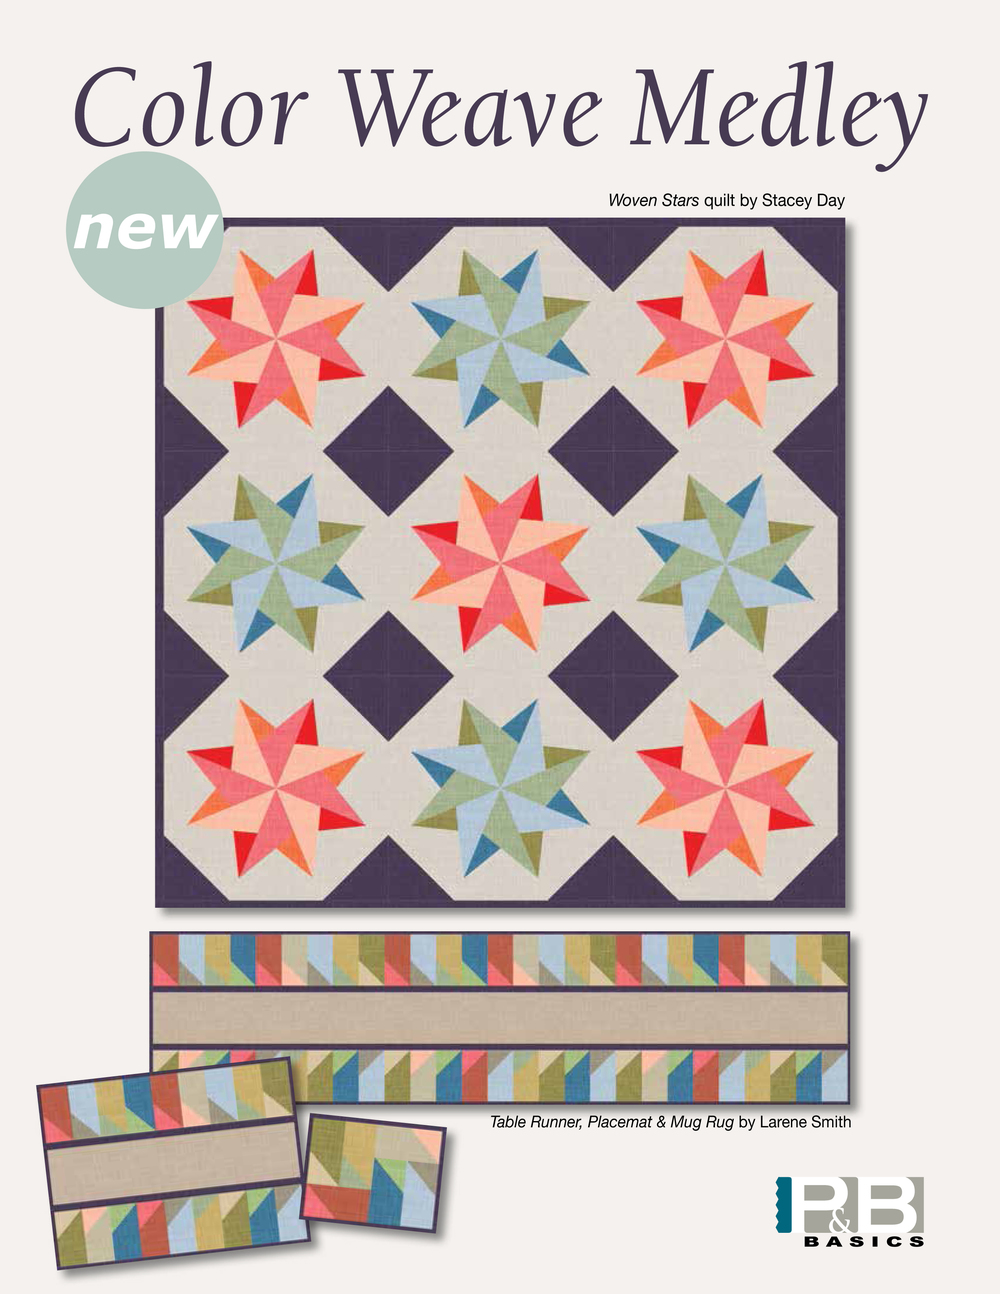 Woven Star by: Stacey Day Color Weave Medley